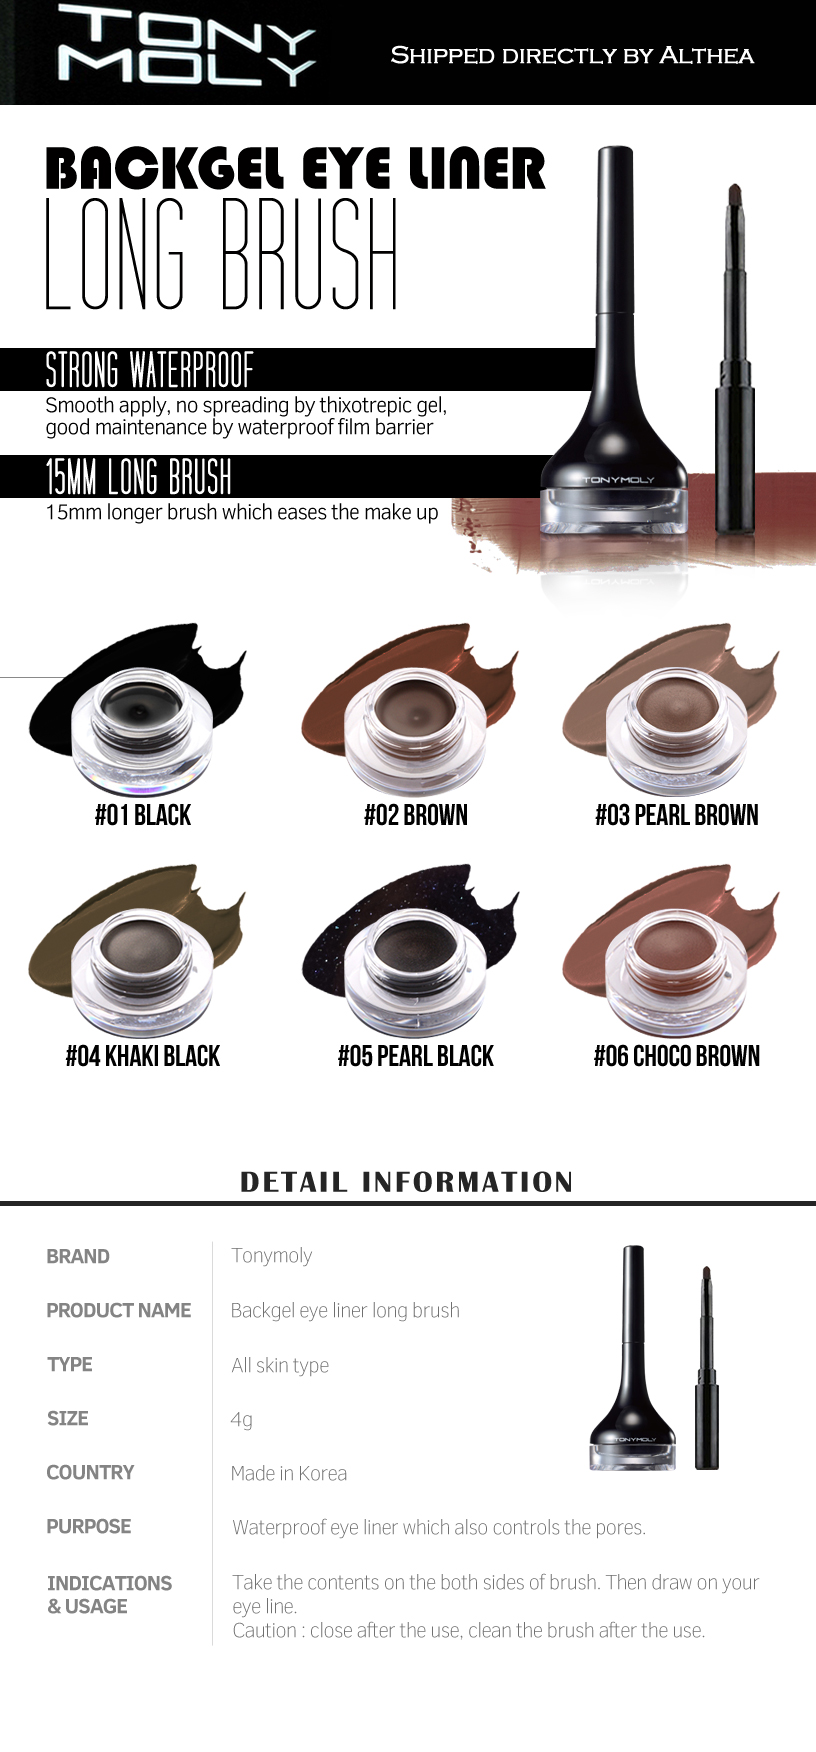 Buy Tony Moly Backgel Eye Liner online at Althea Malaysia